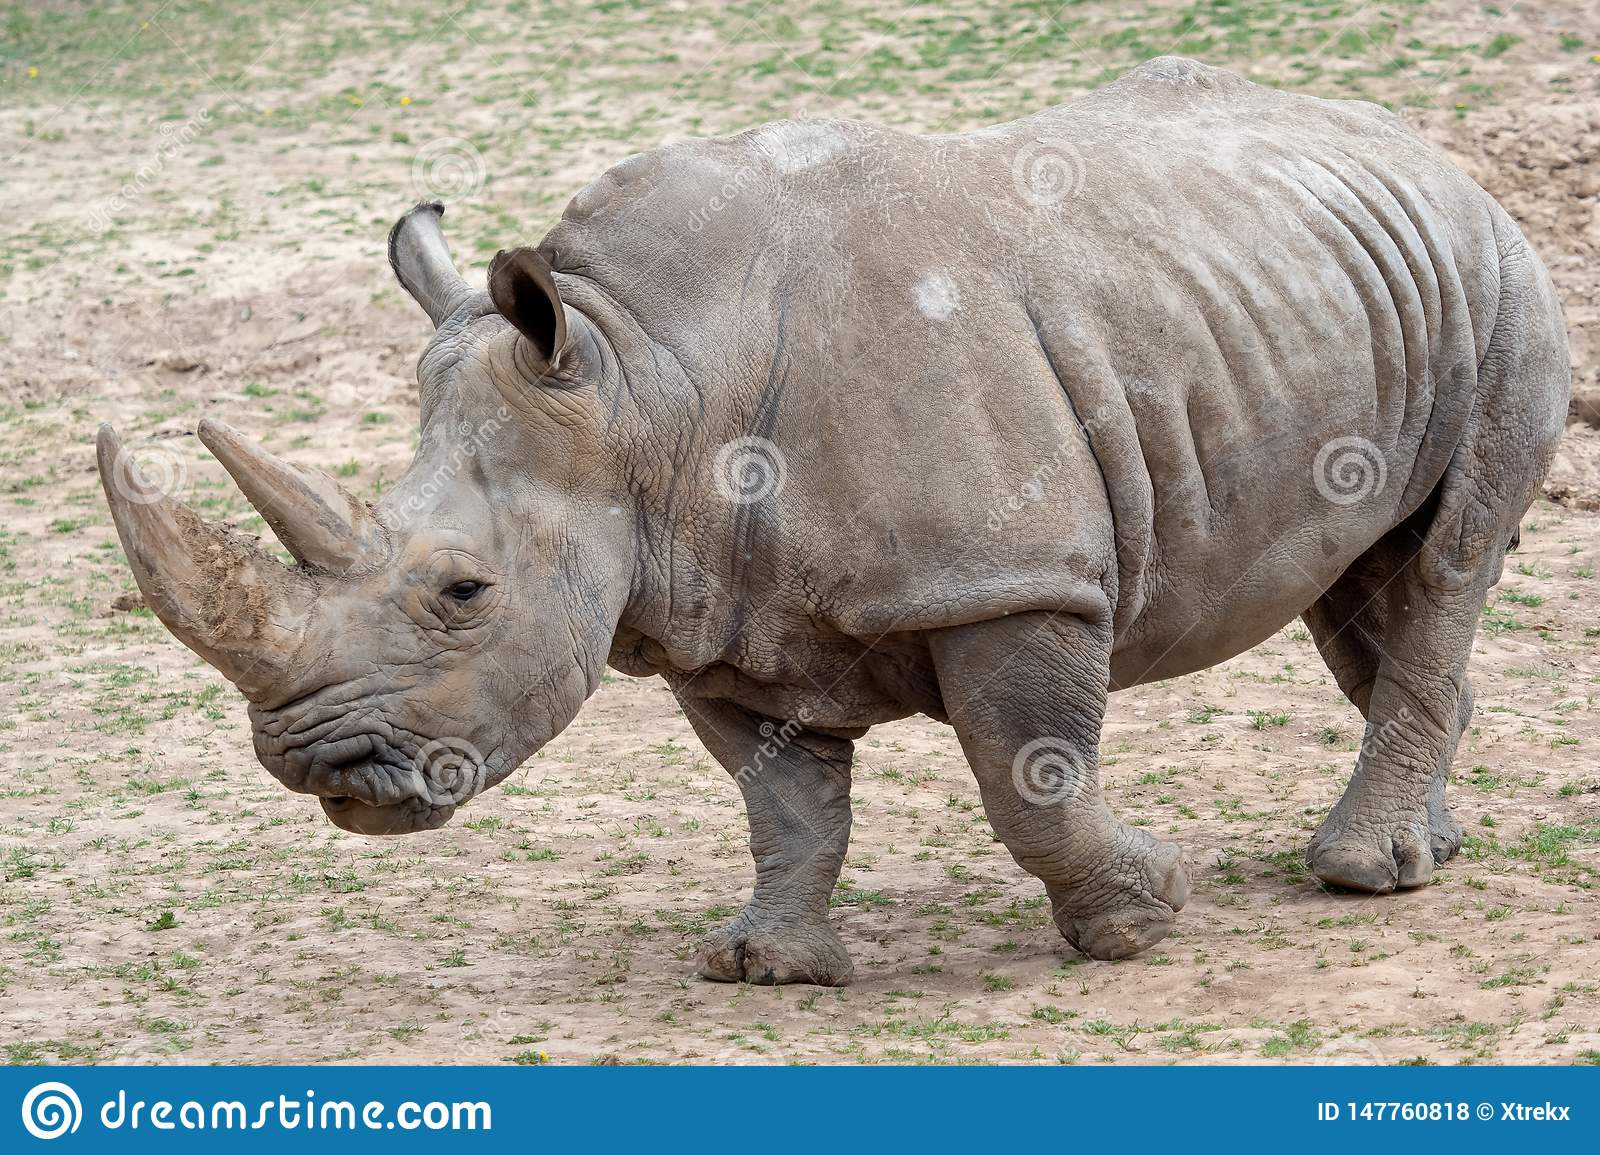 Southern white rhinoceros Ceratotherium simum simum. Critically endangered animal species